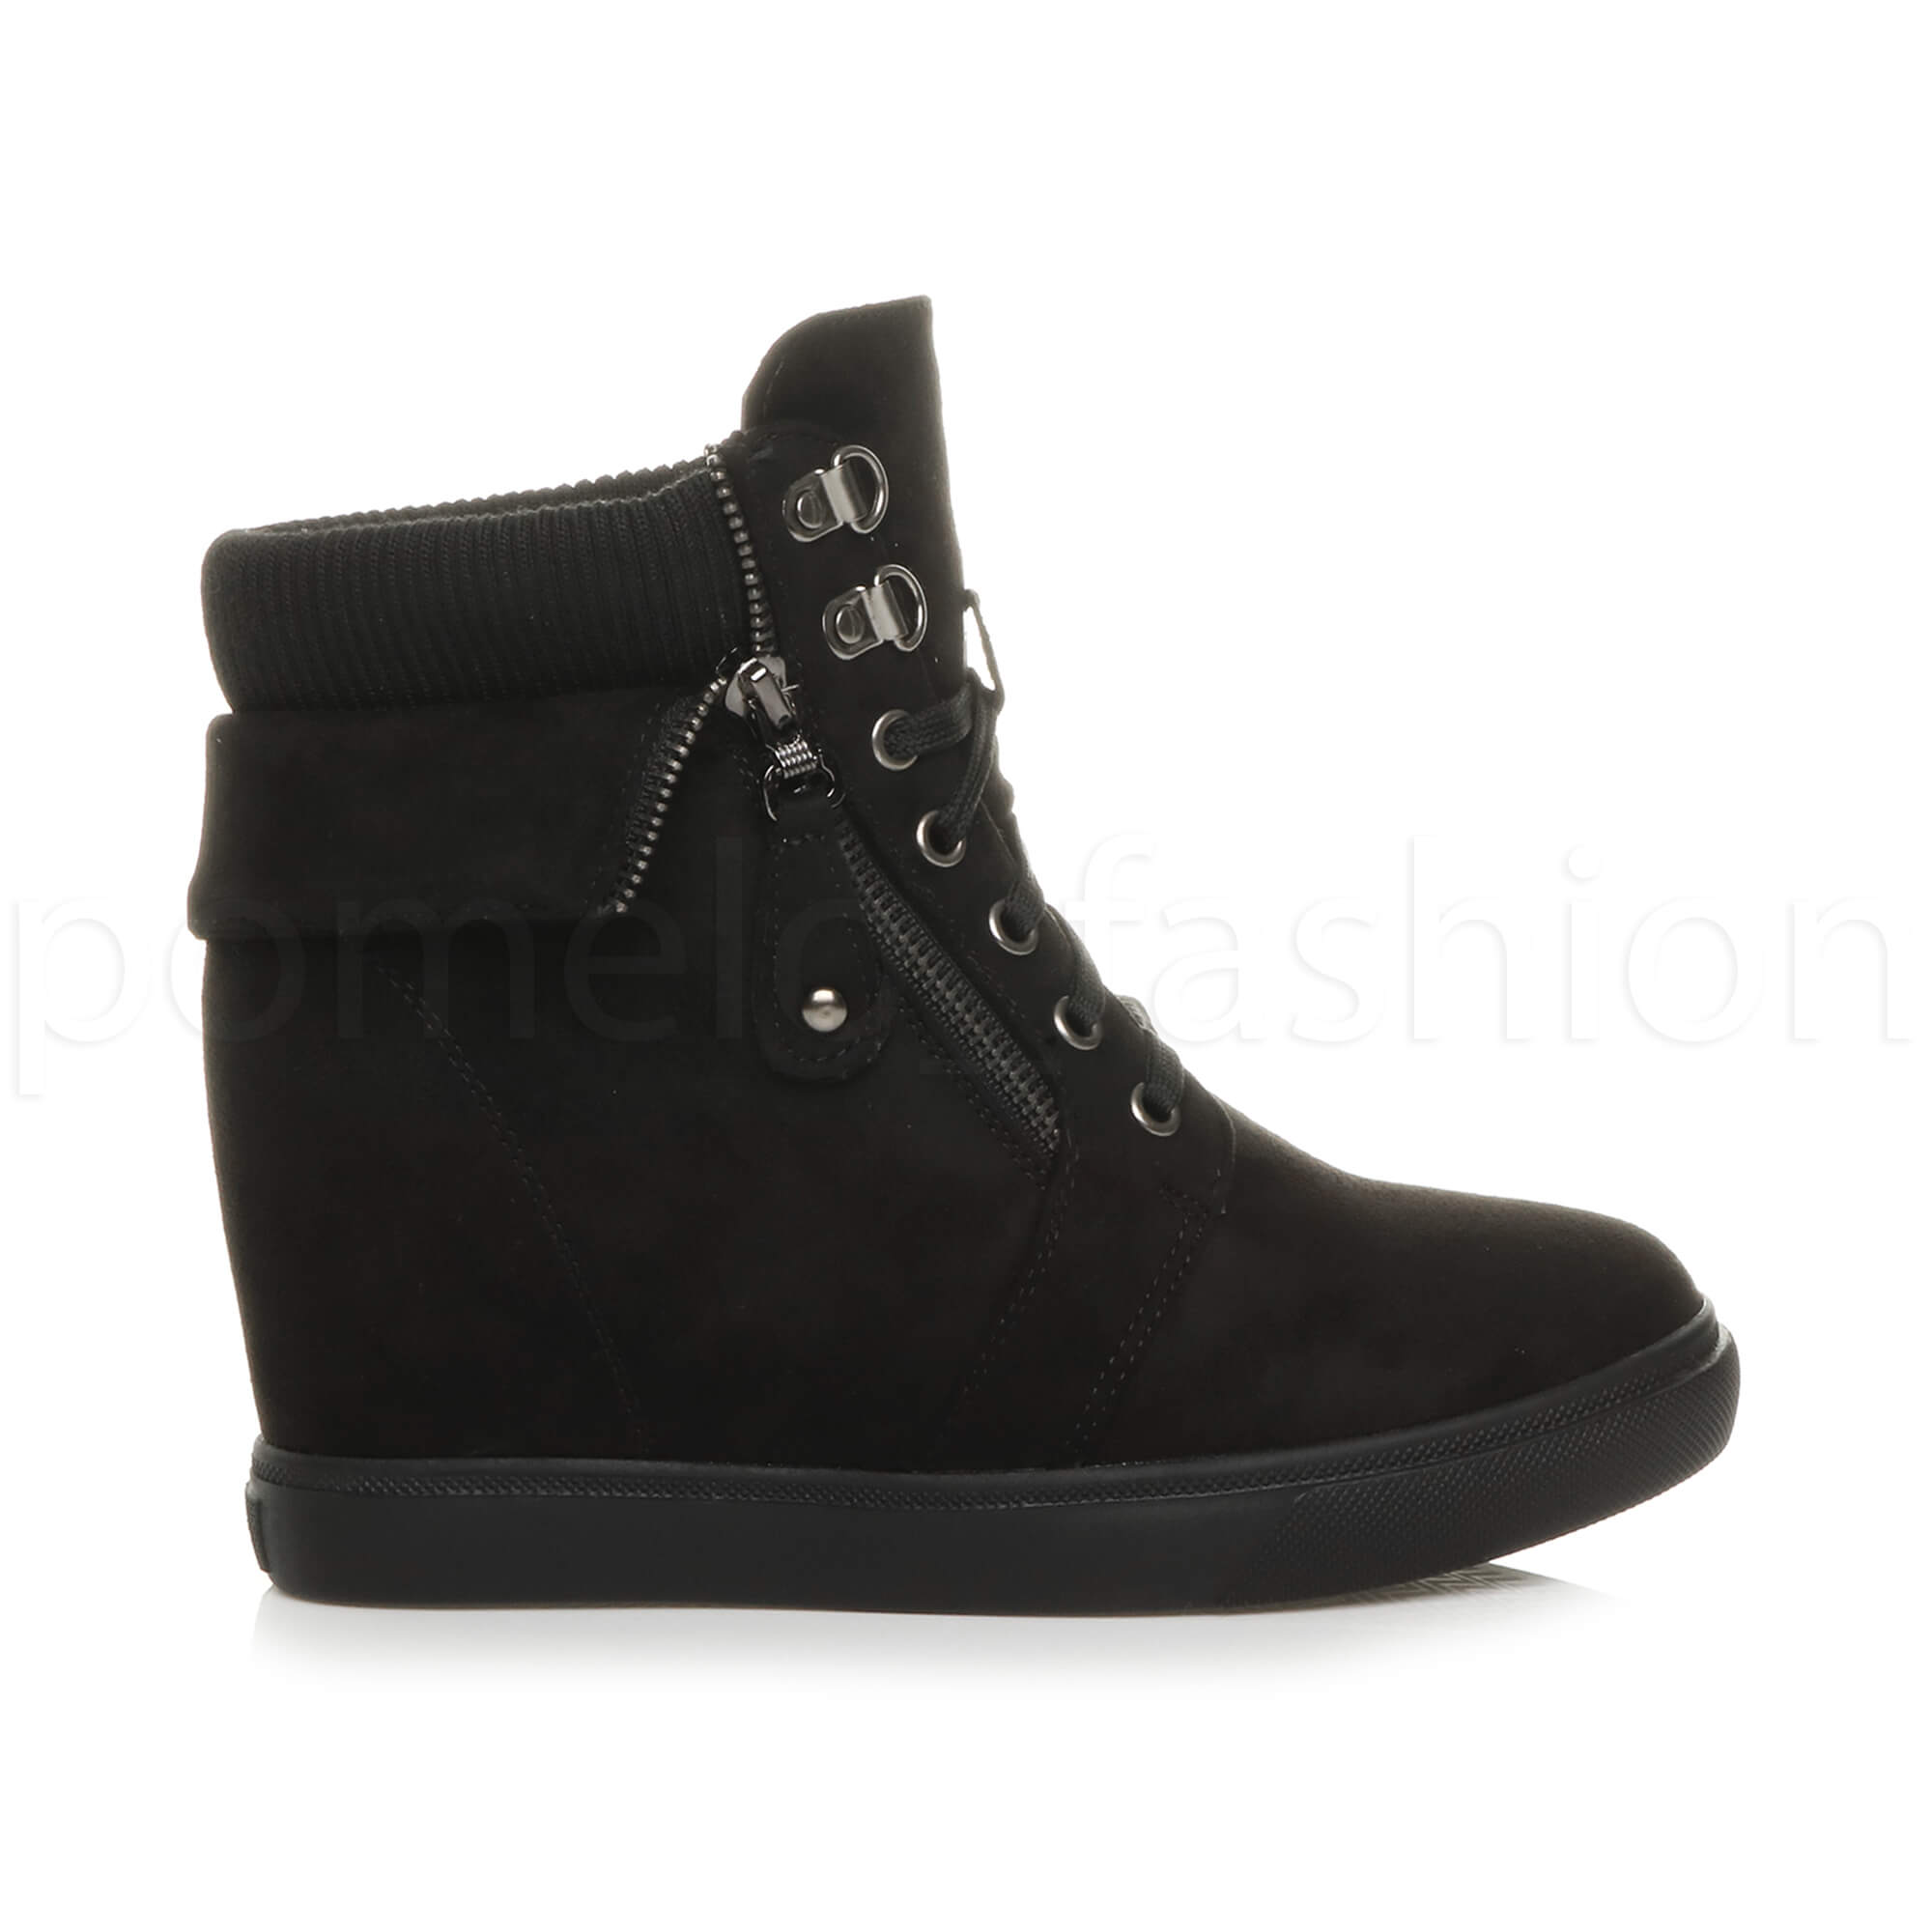 WOMENS-LADIES-MEDIUM-WEDGE-CUFF-COMBAT-BIKER-MILITARY-ANKLE-BOOTS-TRAINERS-SIZE